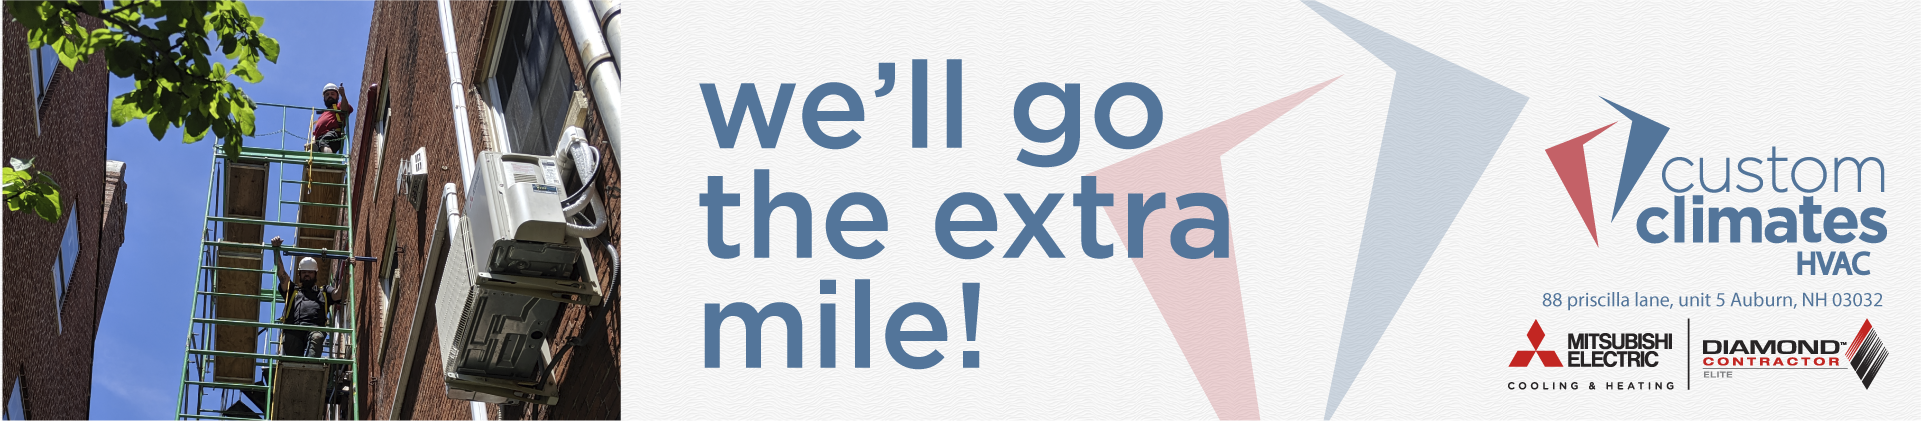 Go the extra mile banner